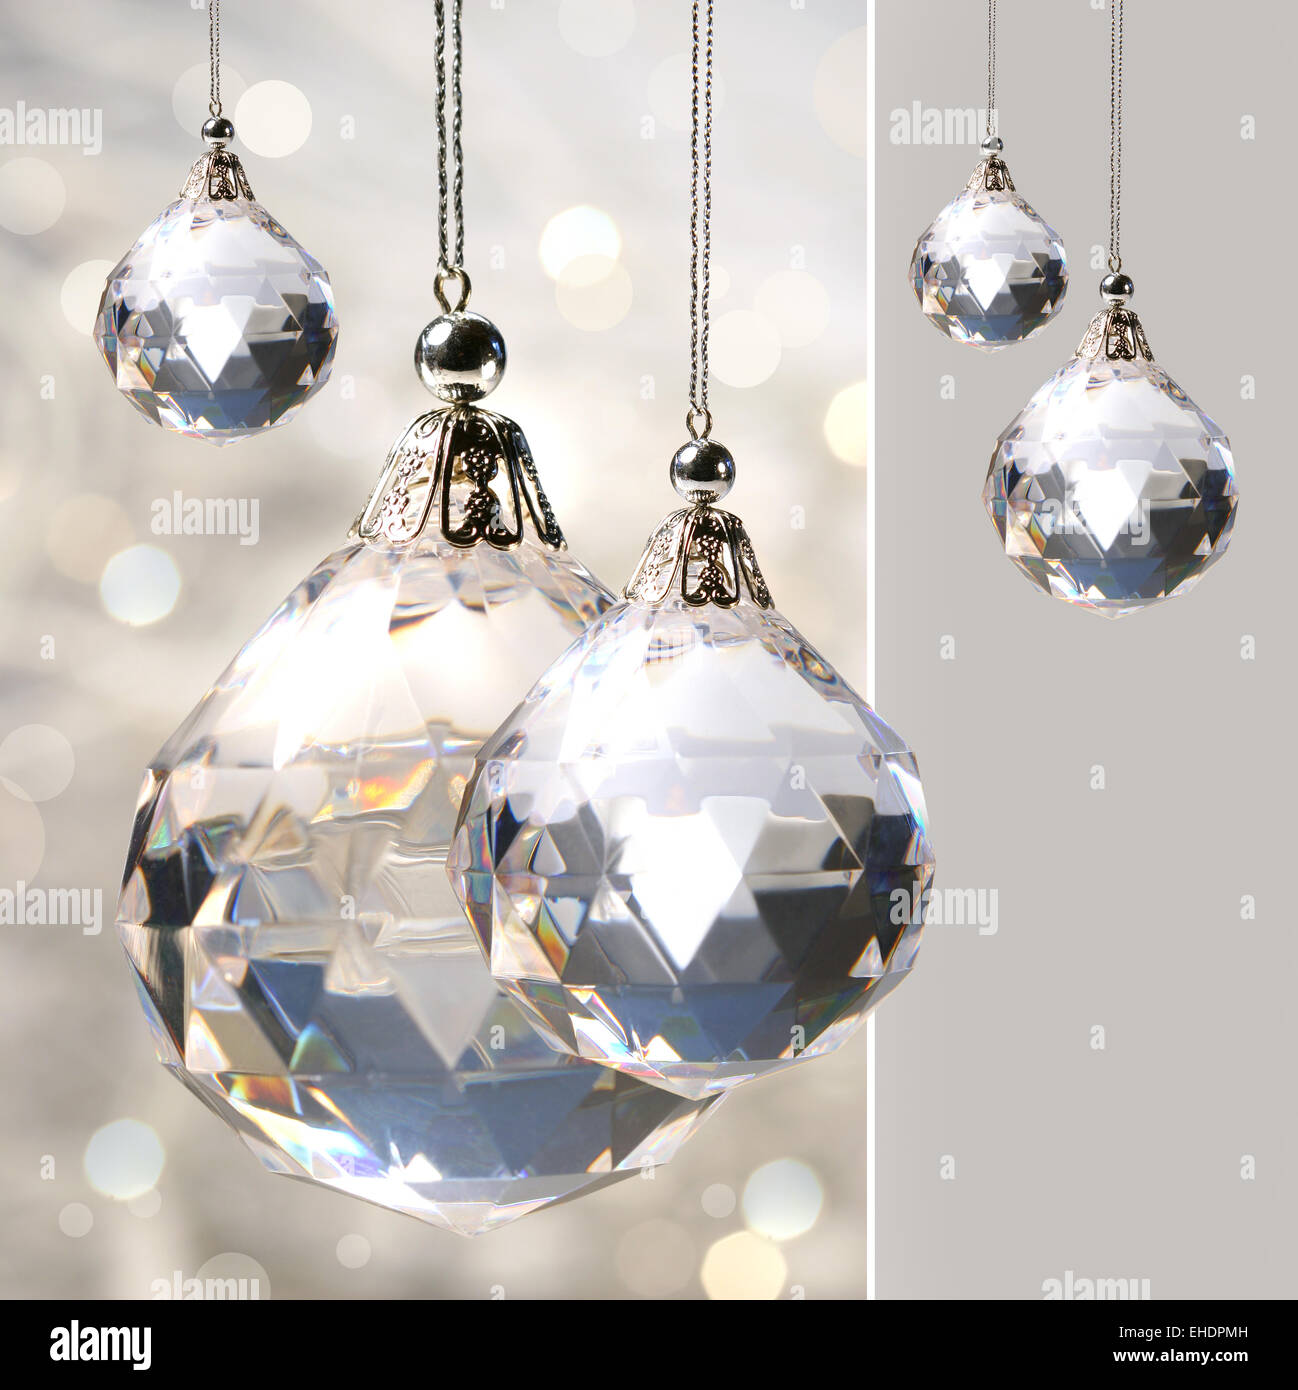 Crystal ornament hanging with lights Stock Photo